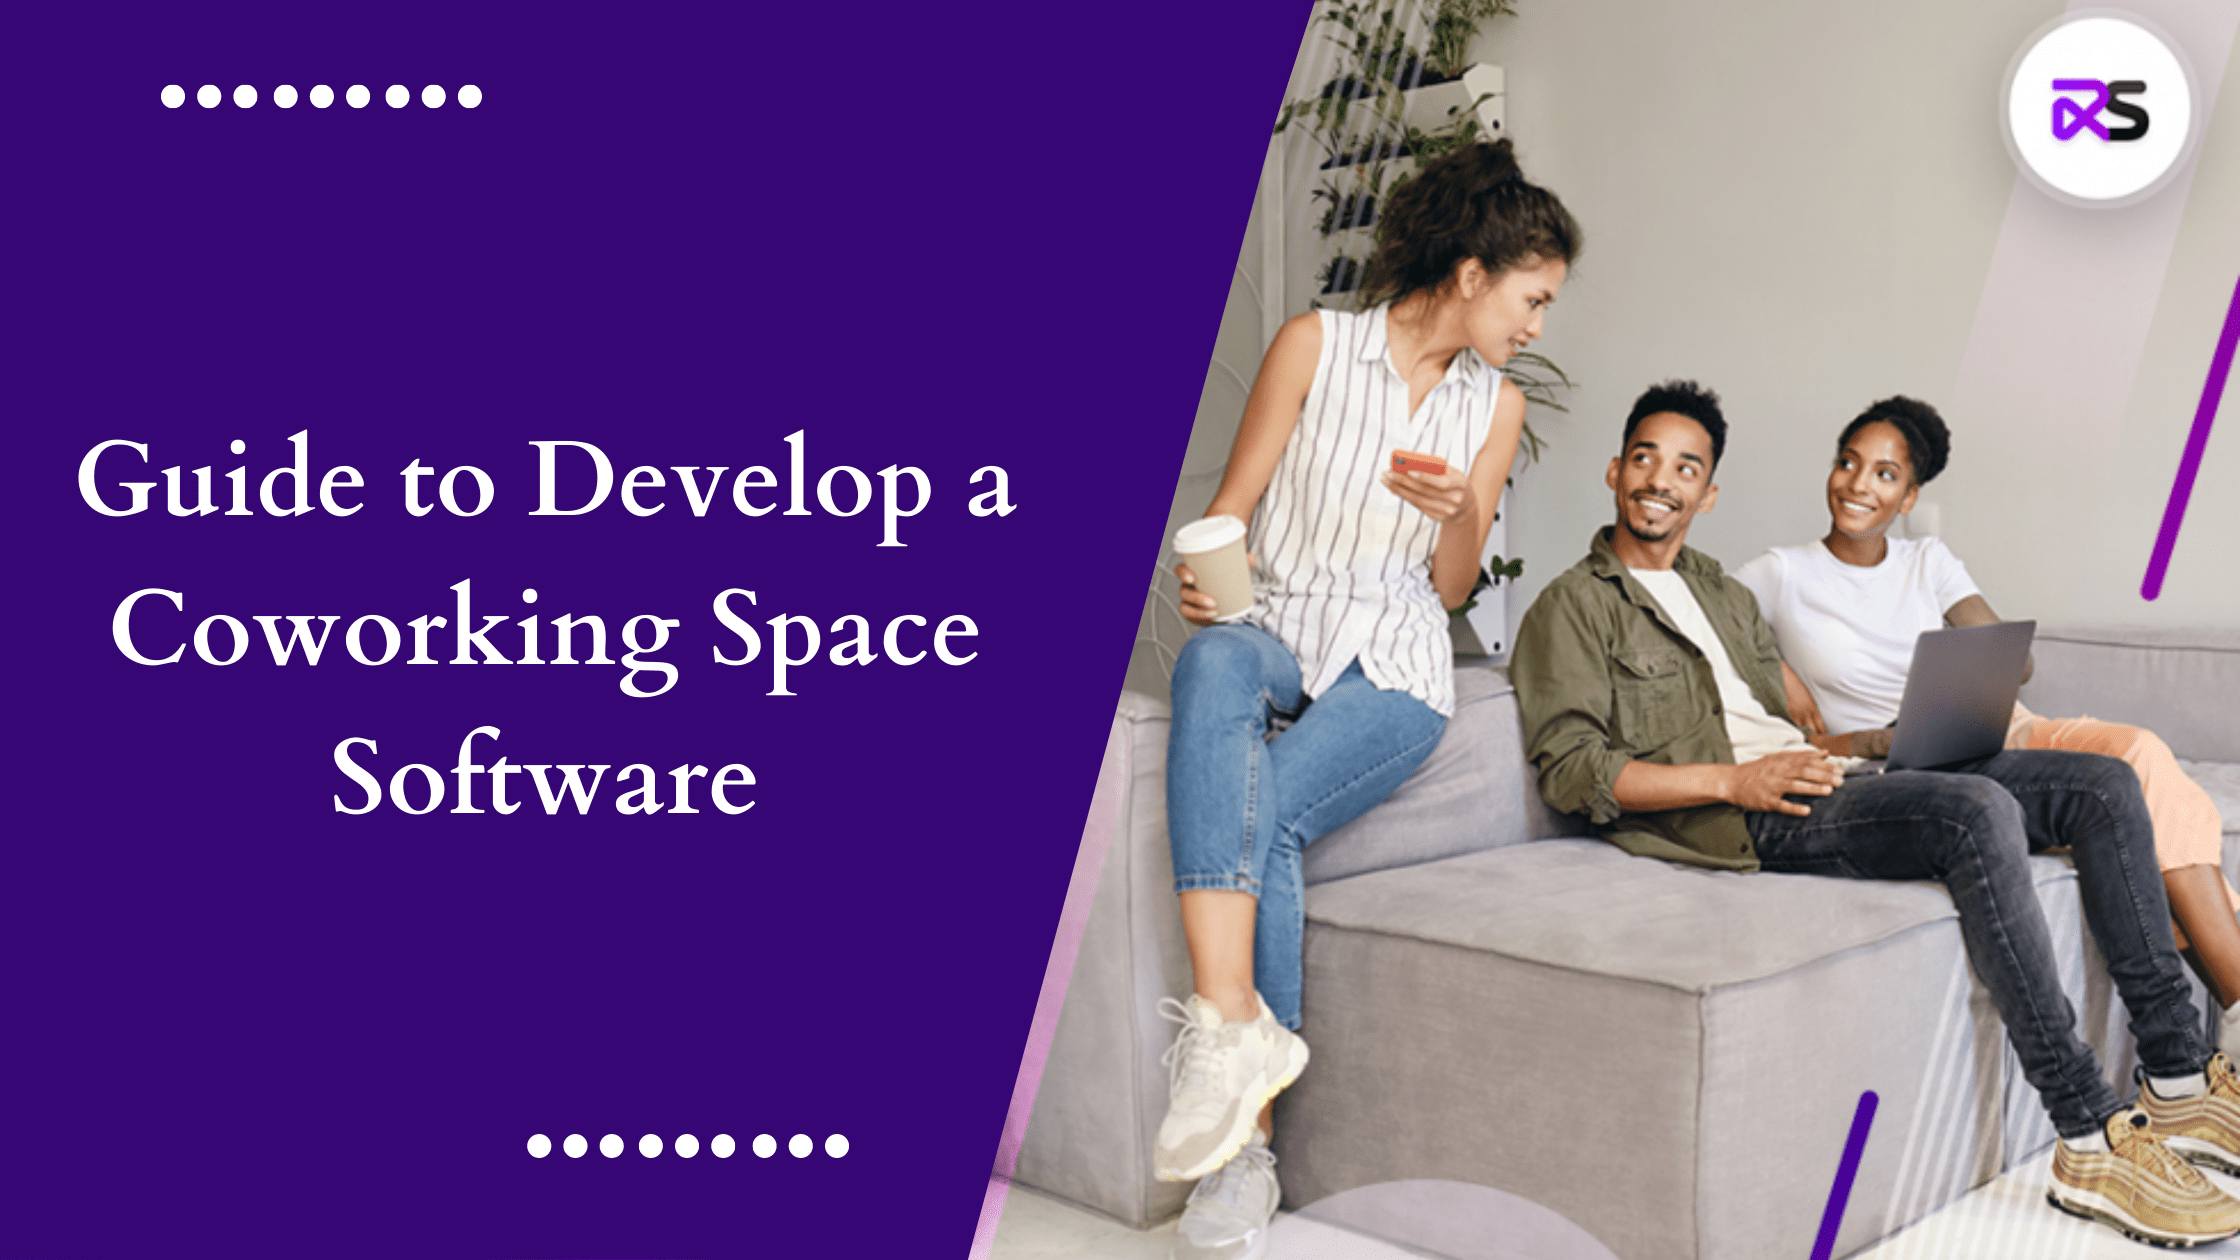 Guide to develop a coworking space software